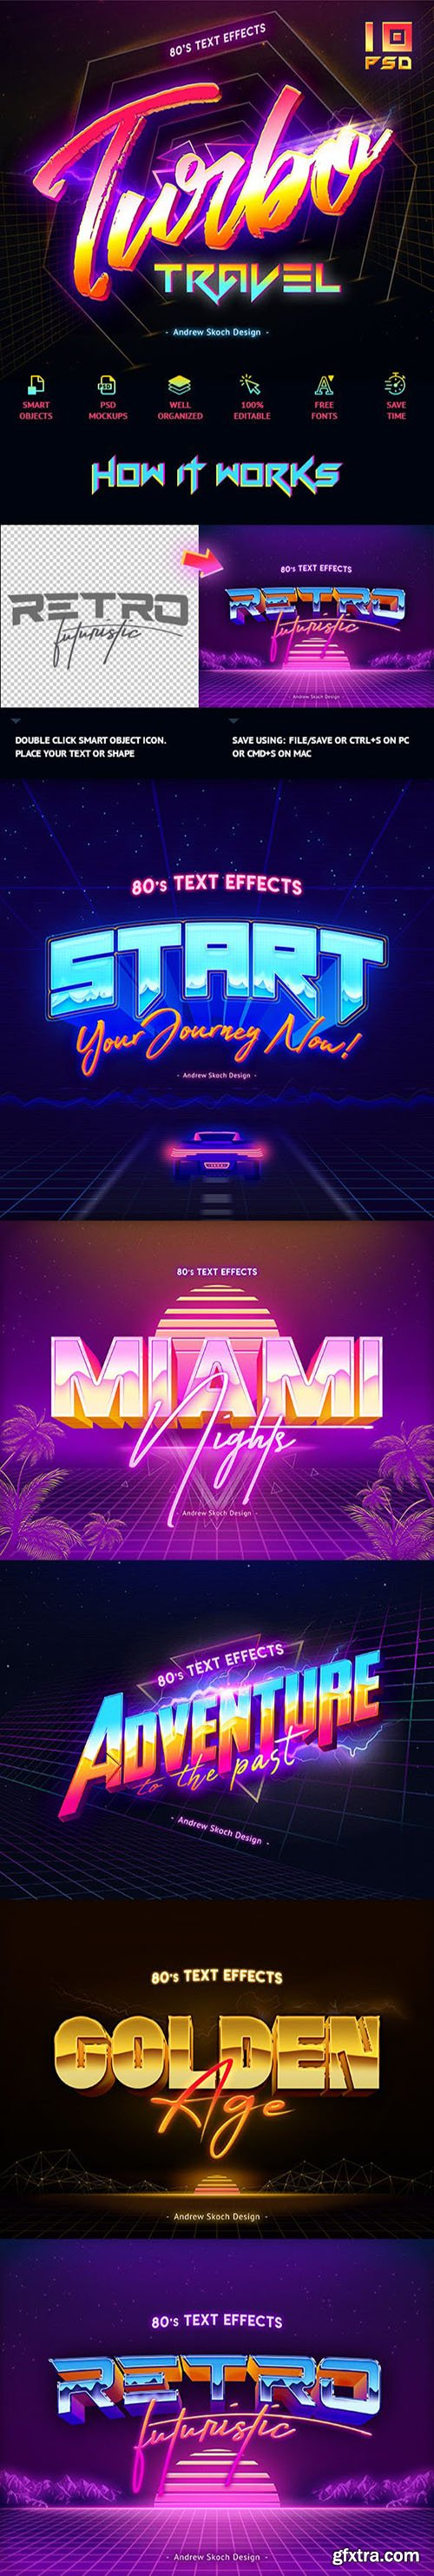 80's Text Effects vol.2 23558050